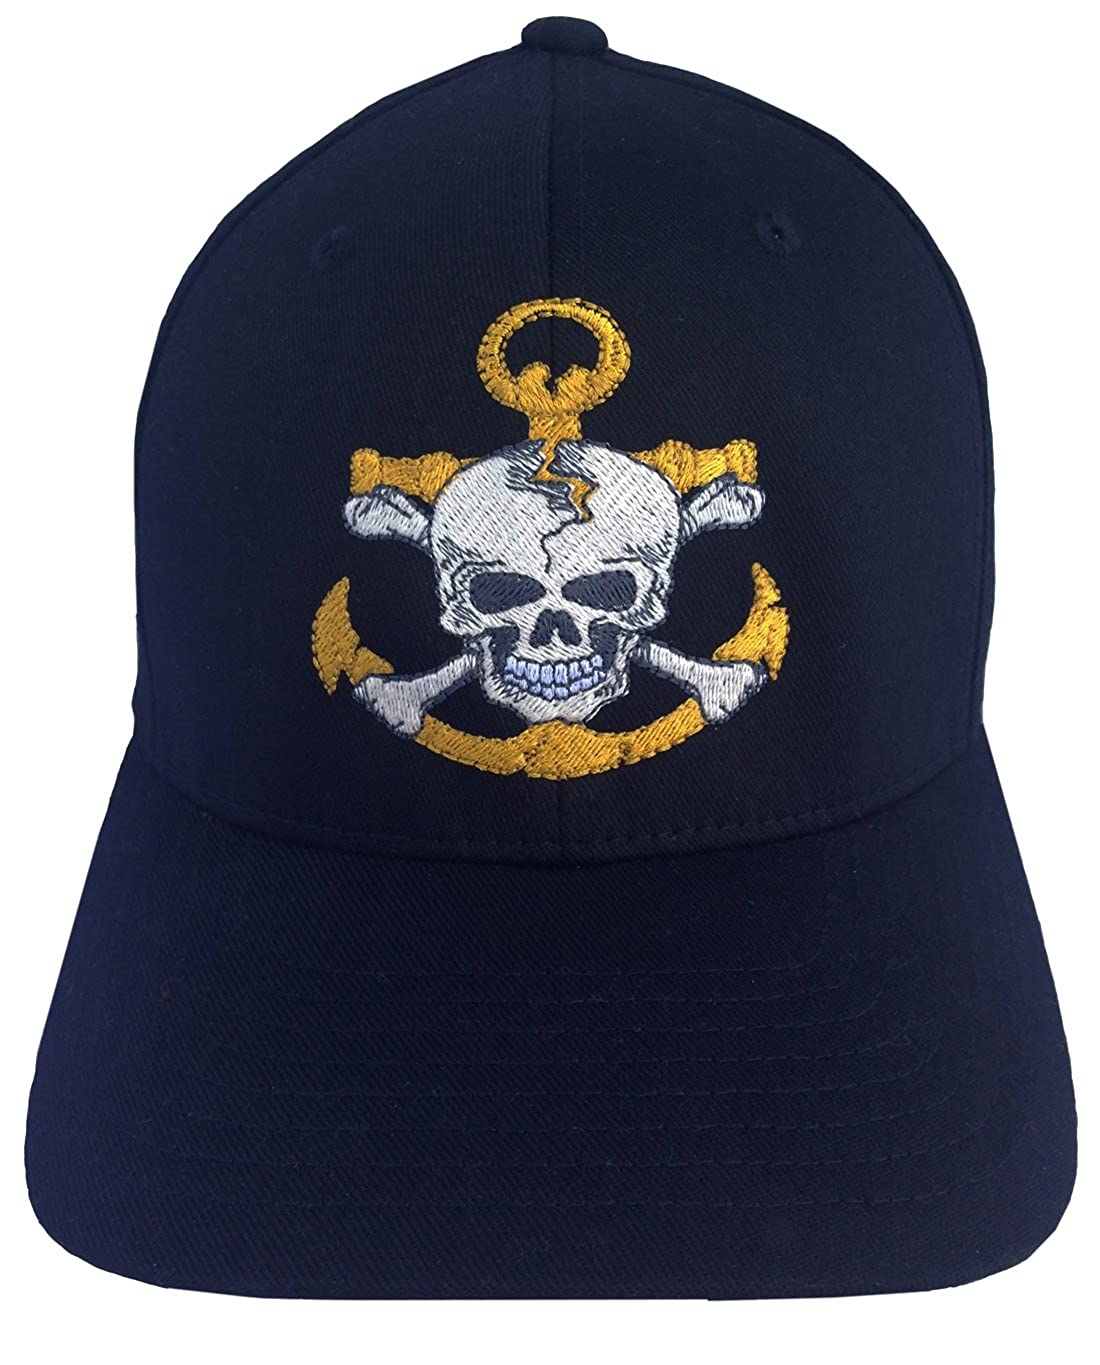 a212d96c72373e Amazon.com: Anchor Skull on a Flexfit Structure Twill Cap, Black: Clothing